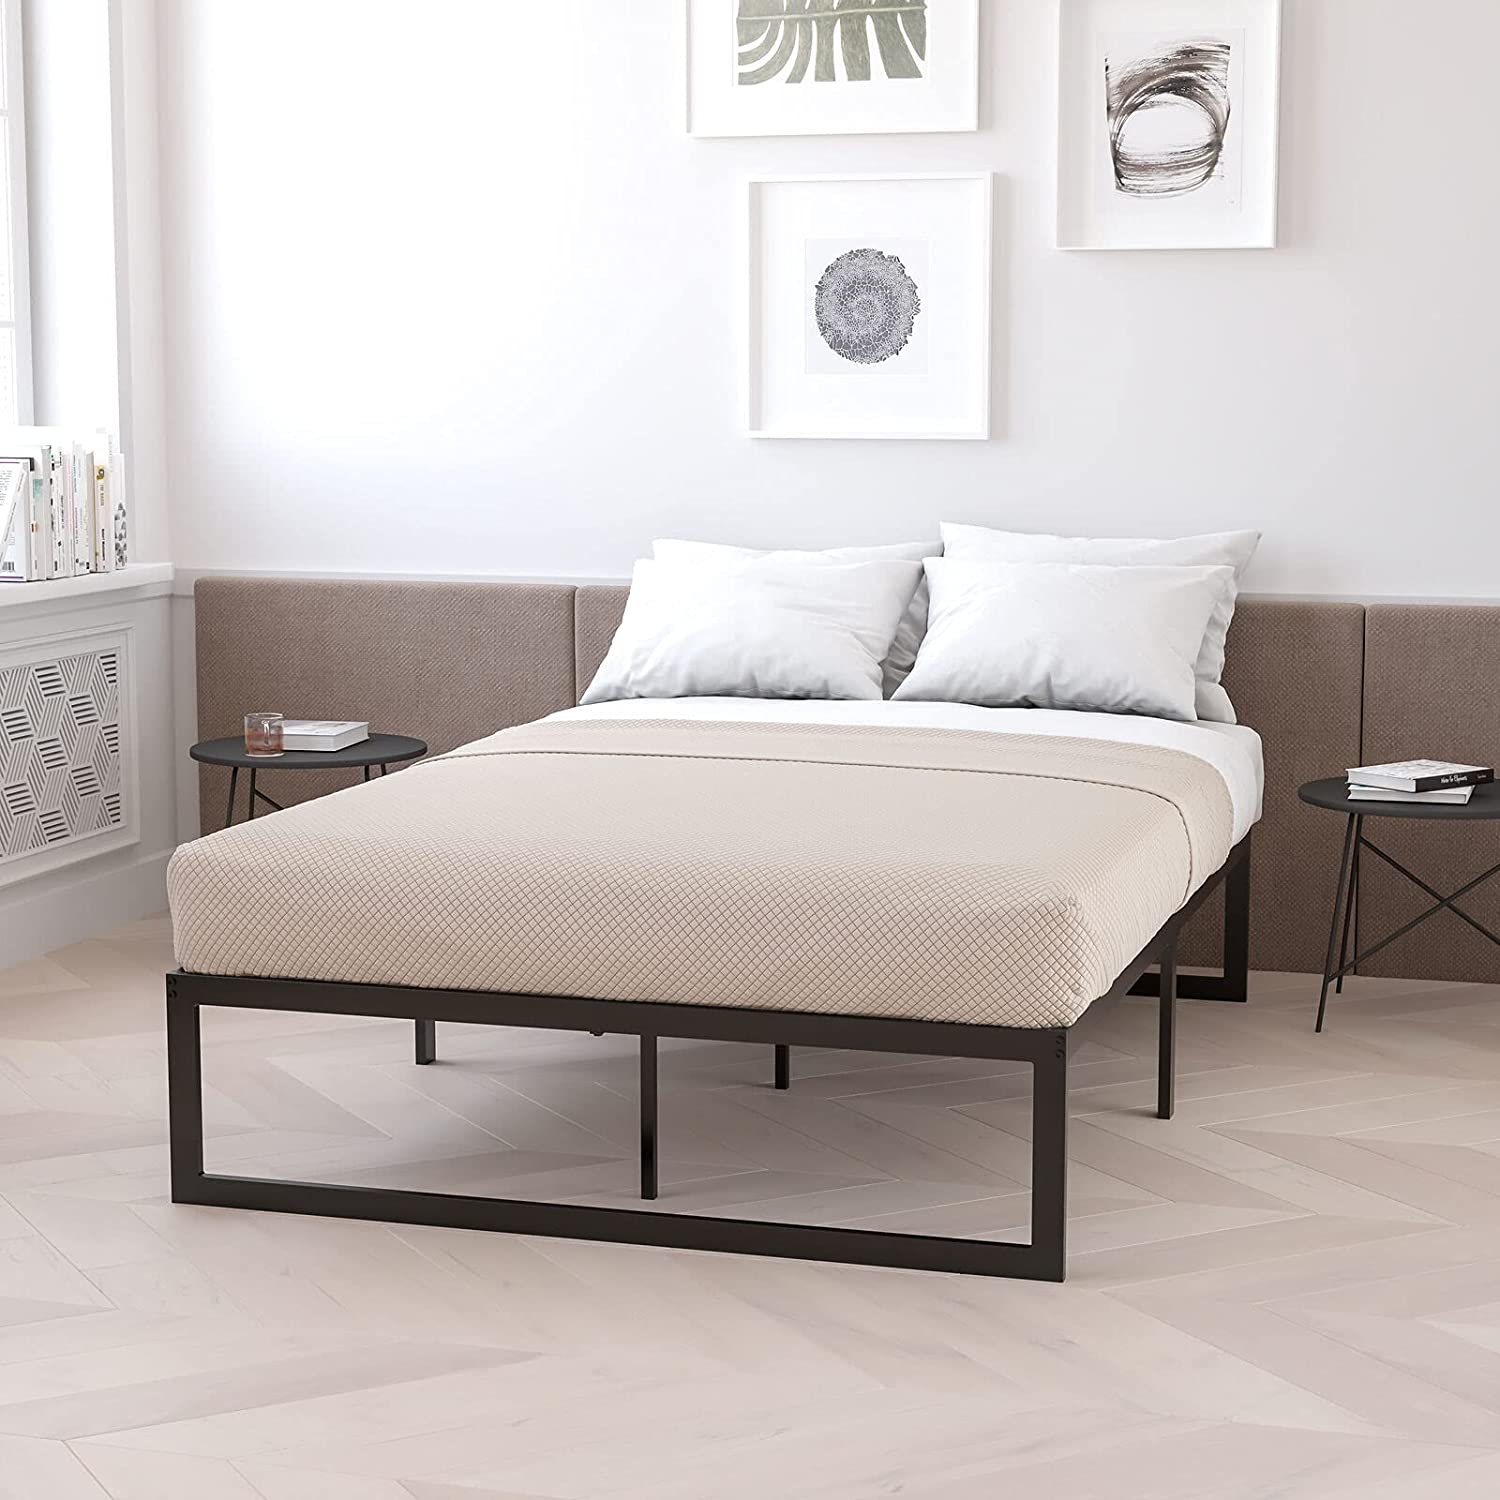 sold out ADHW 14 Inch Twin Metal Platform Support No Slat Fashion Steel Frame Bed